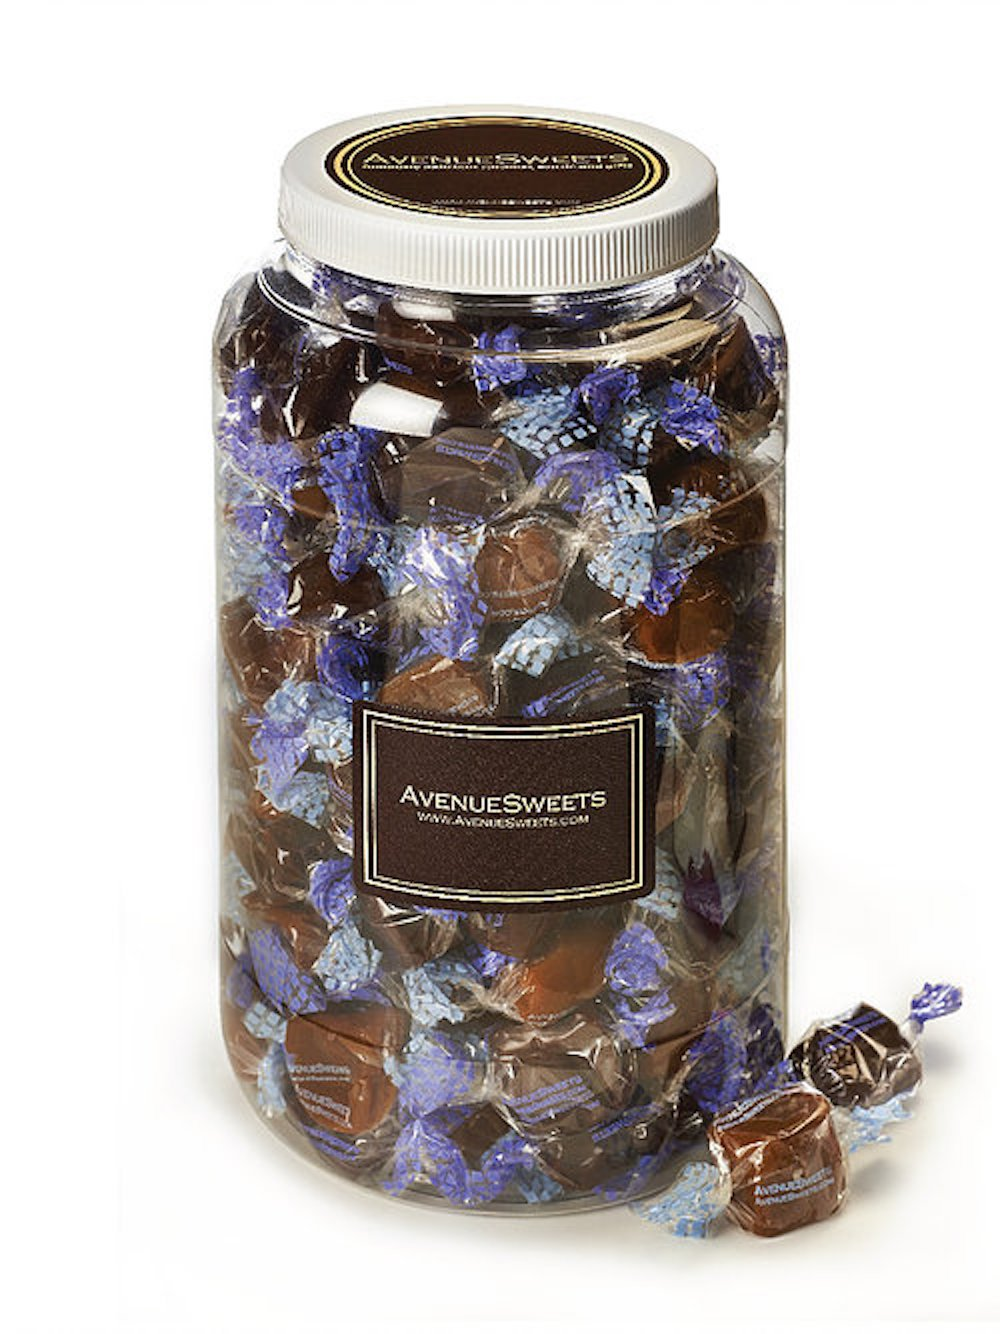 AvenueSweets - Handcrafted Individually Wrapped Soft Caramels - 1 Gallon Jar - Customize Your Flavors by AvenueSweets